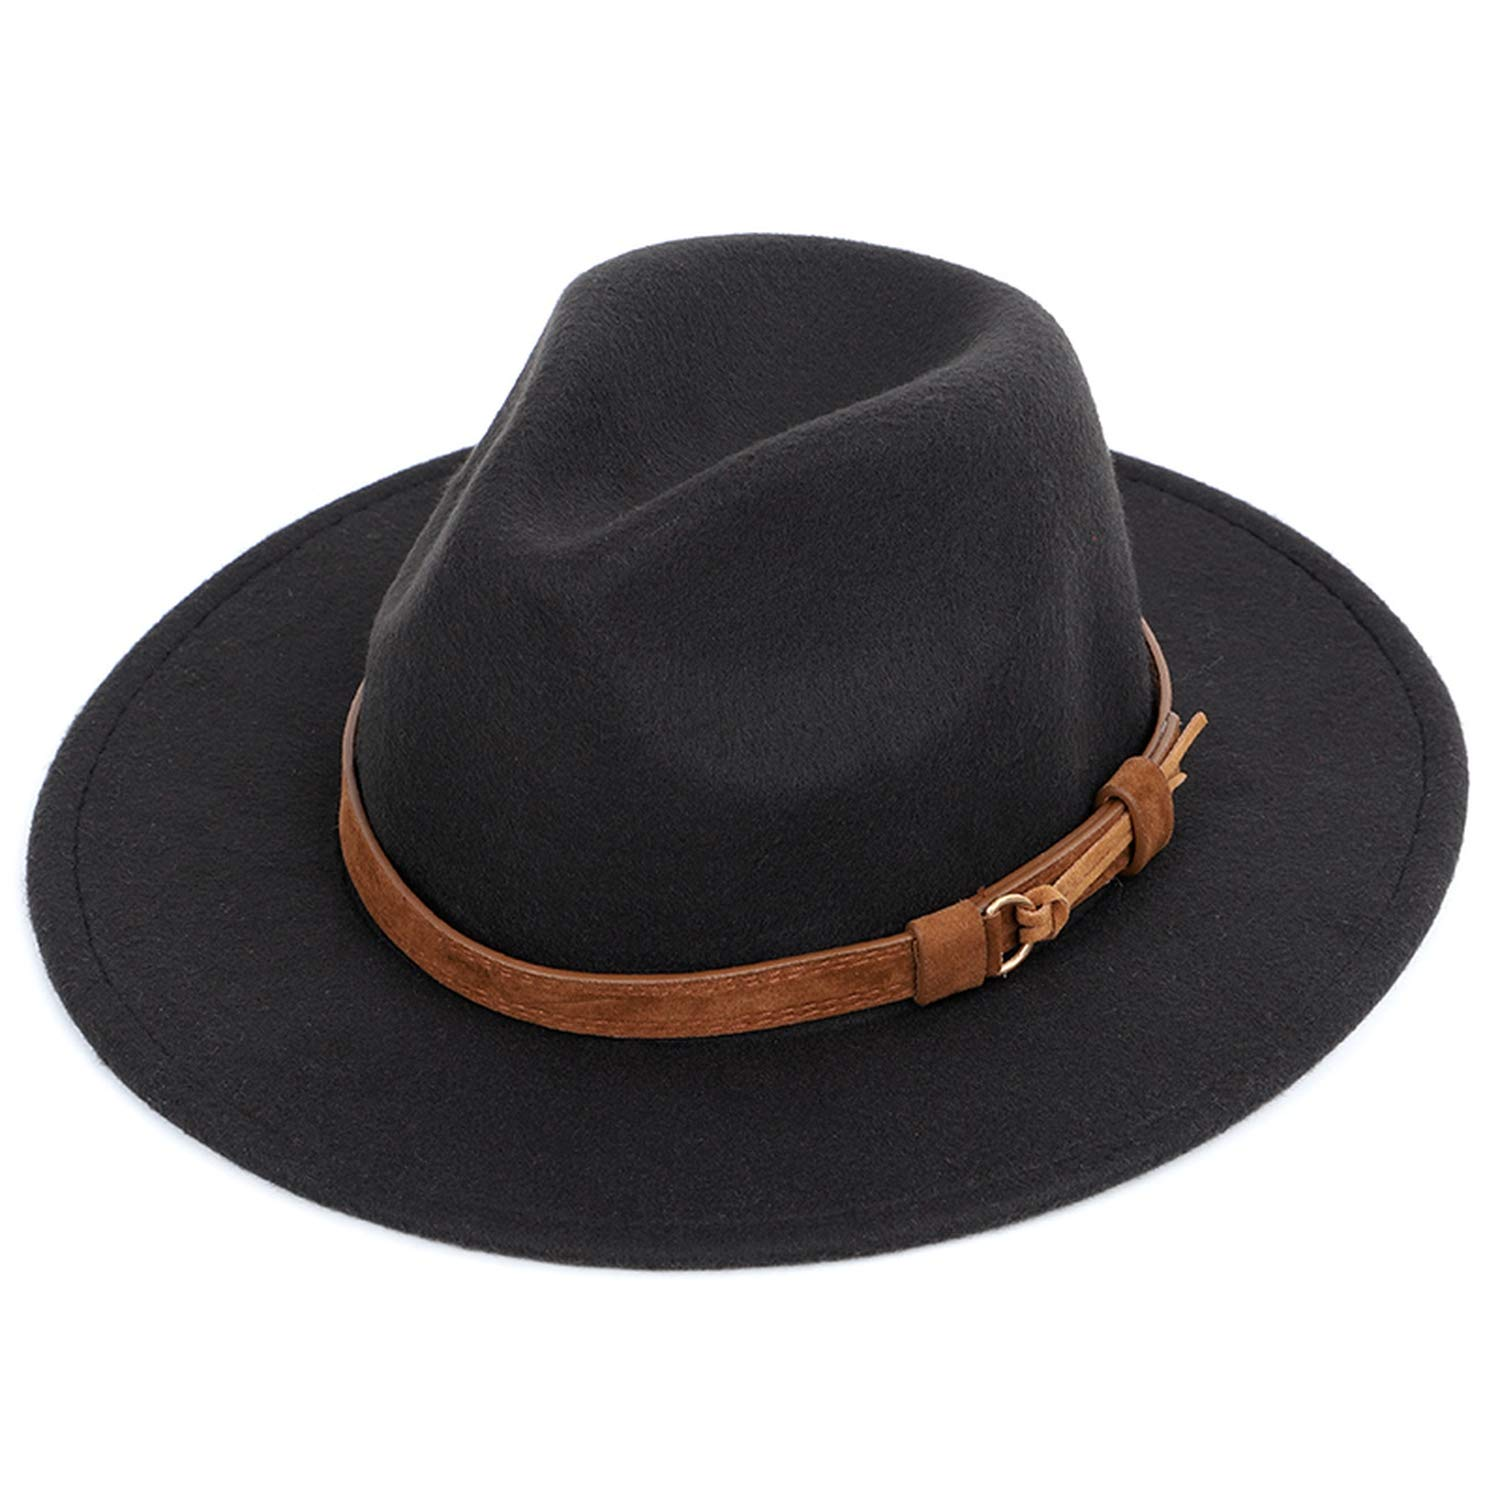 Mens Fedora Wool Warm and Comfortable Adjustable Large Hats Unisex Fashion Trend Solid Cap Classic Bowler hat